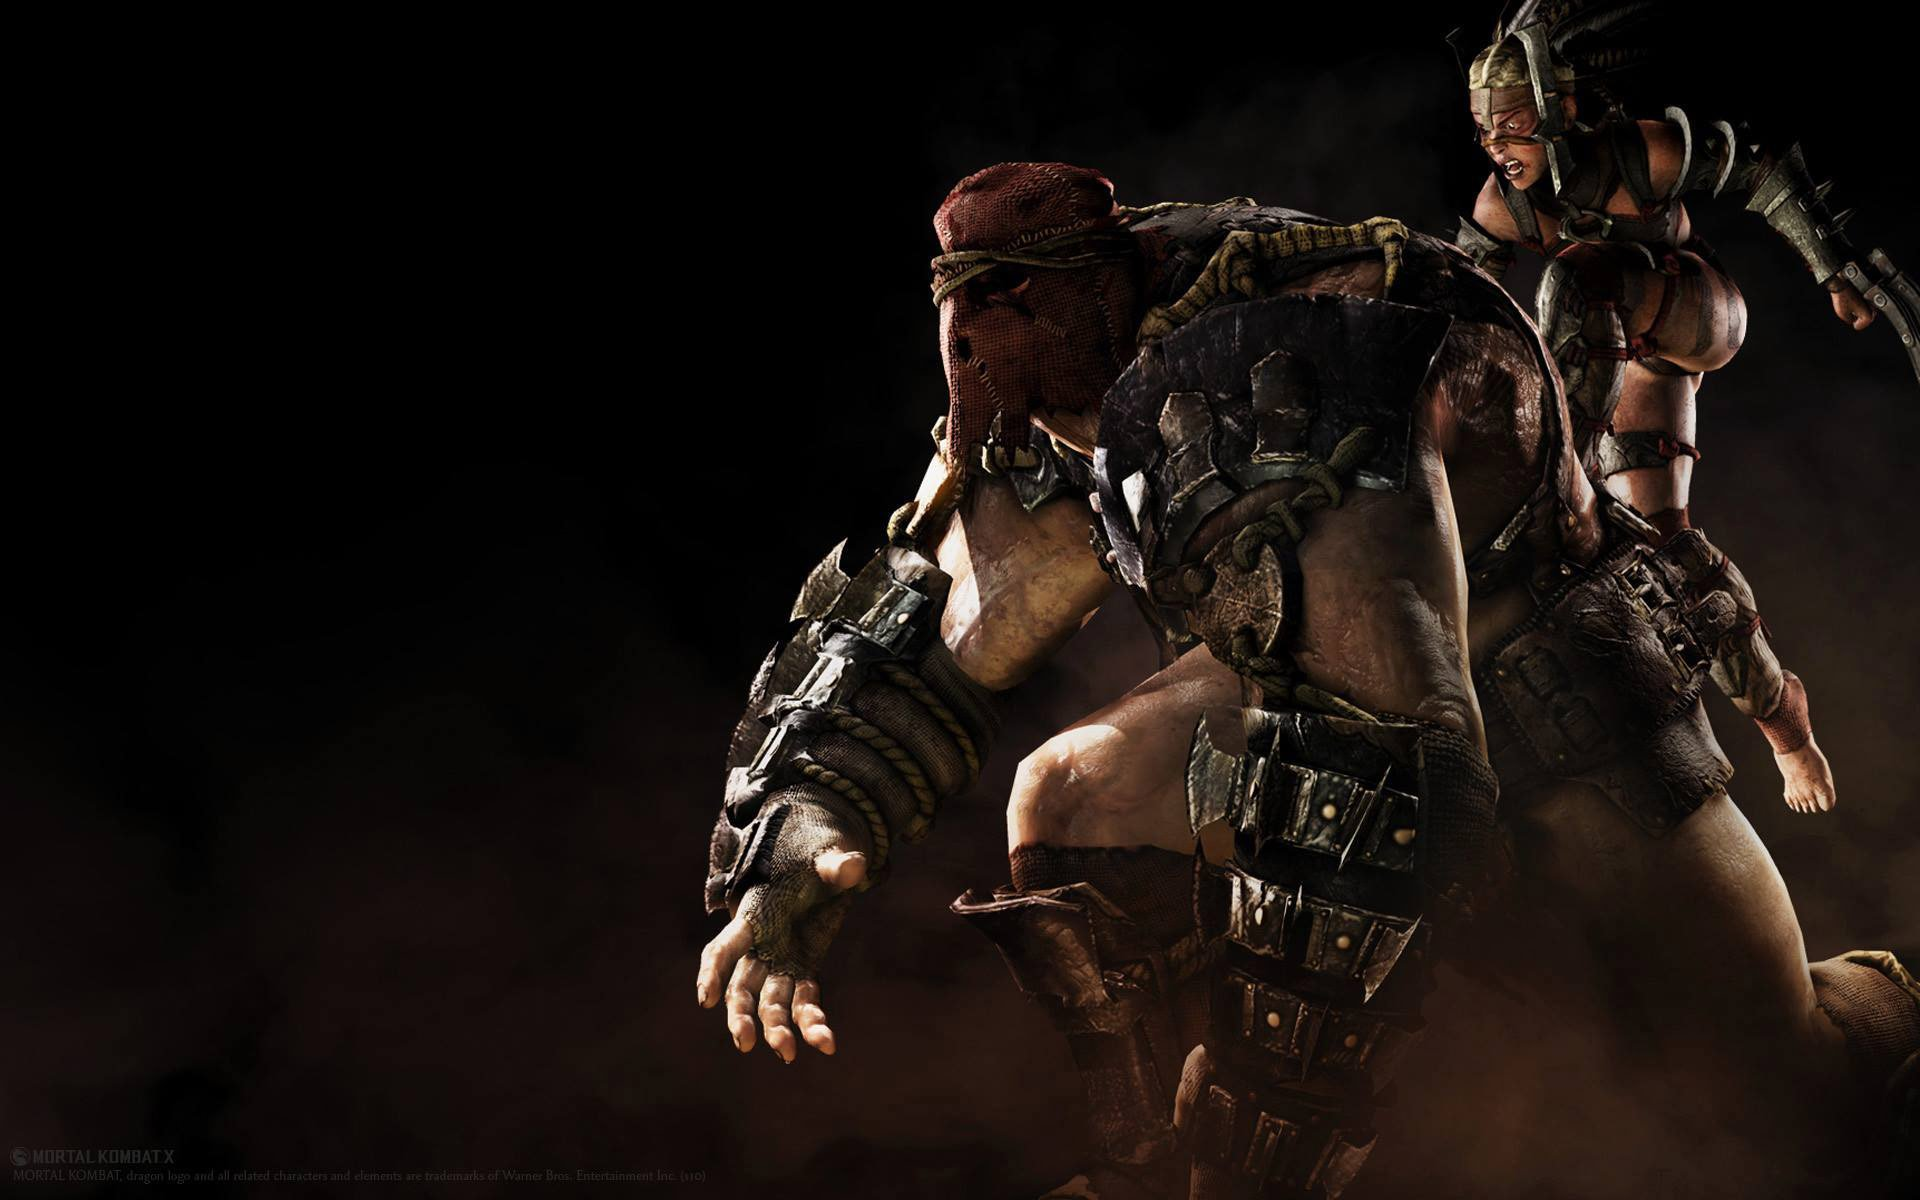 Mortal Kombat X wallpapers featuring oldnew characters image 3 1920x1200